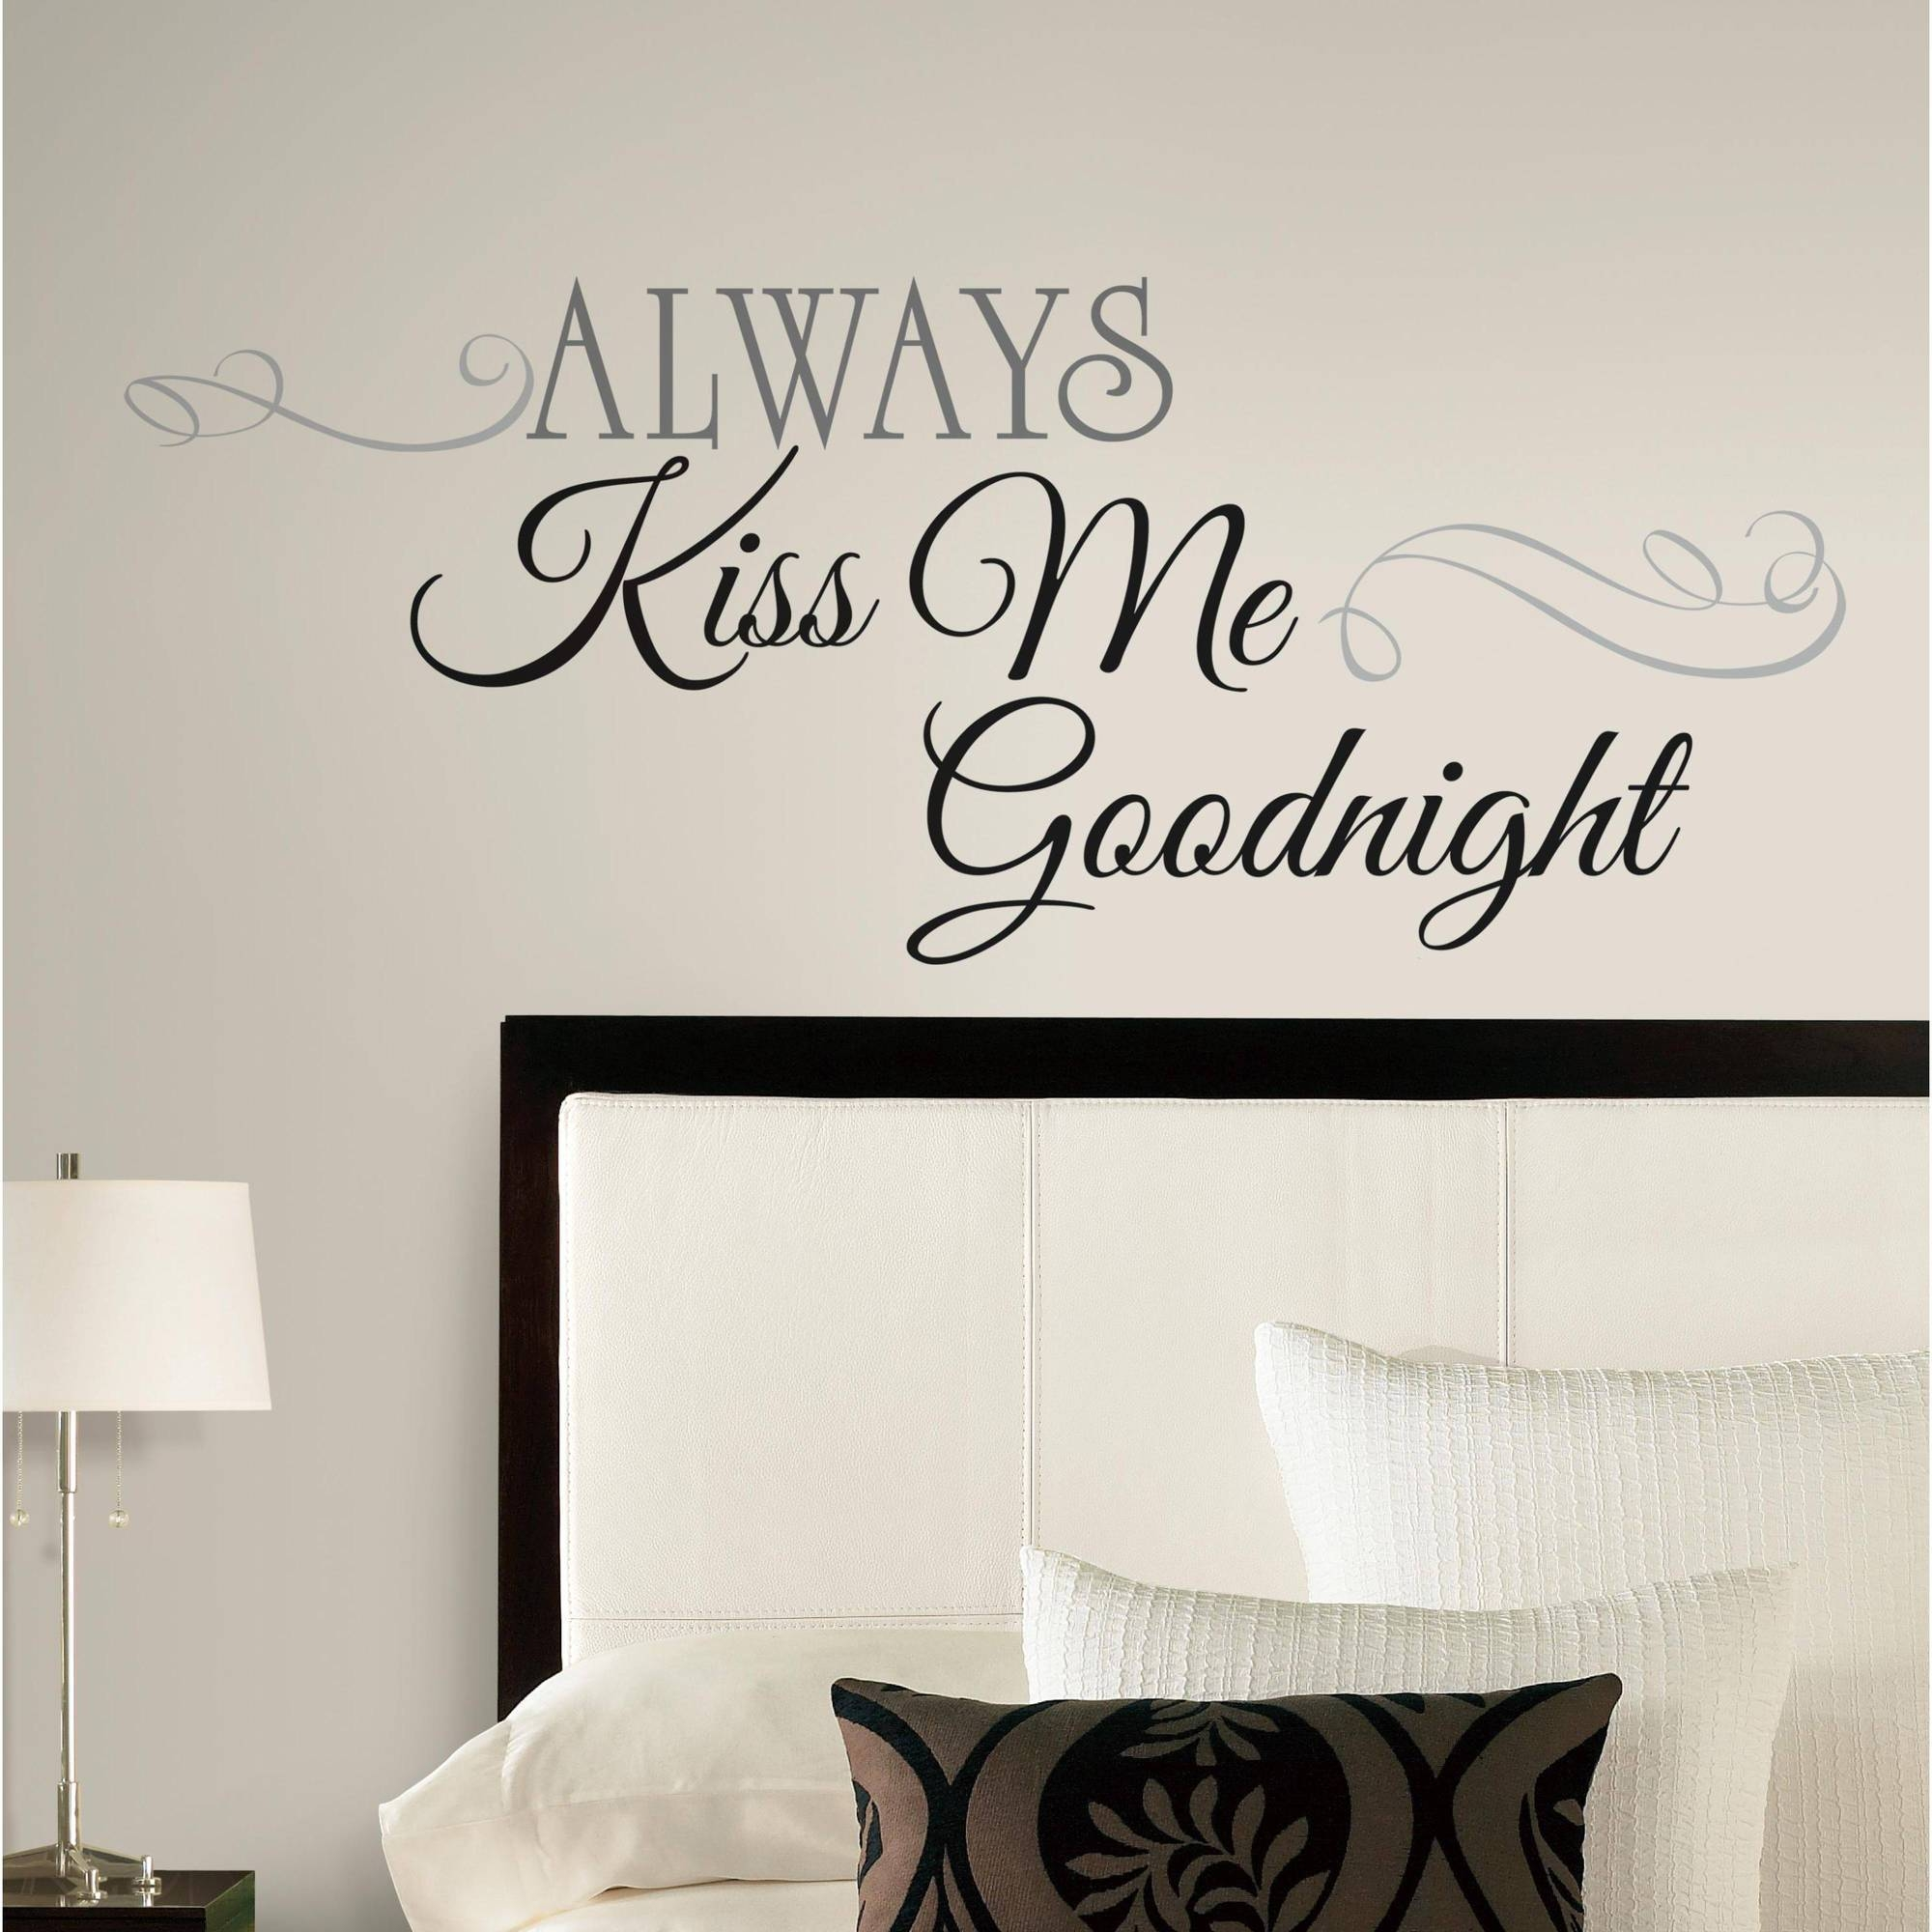 Always Kiss Me Goodnight Peel & Stick Wall Decals – Walmart For Current Walmart Wall Stickers (View 16 of 25)